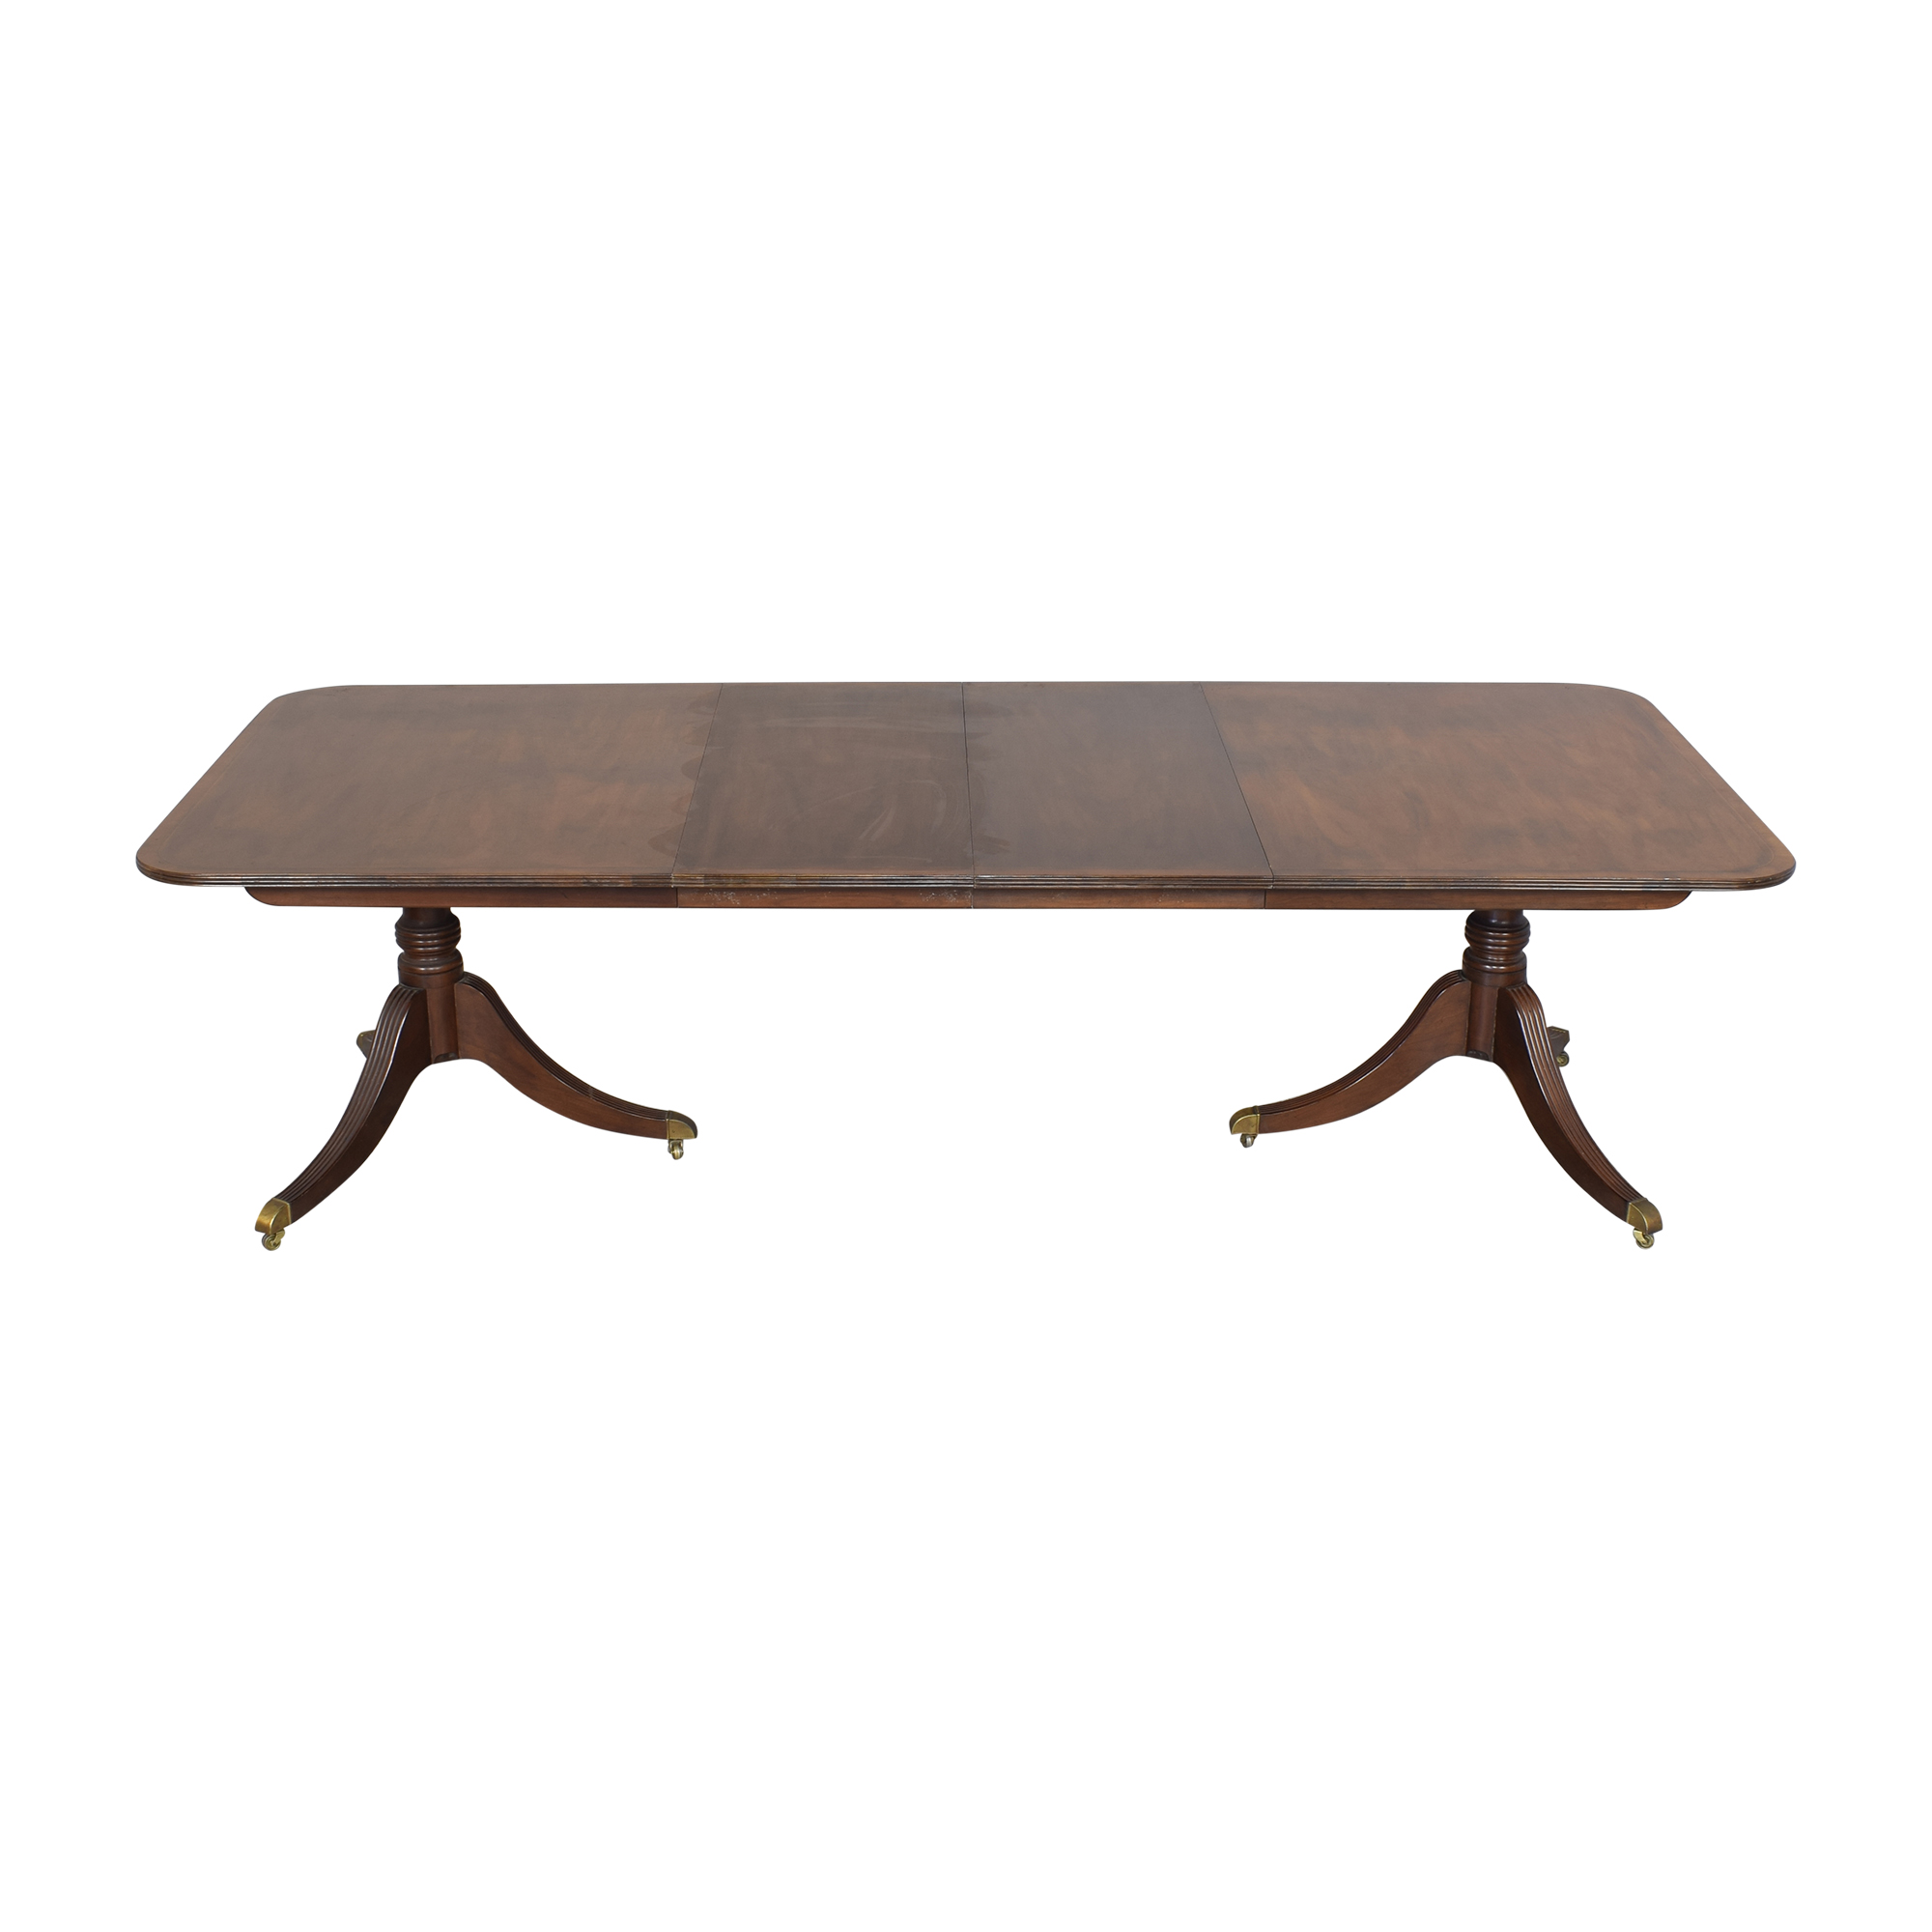 Baker Furniture Baker Furniture Extendable Double Pedestal Dining Table nyc